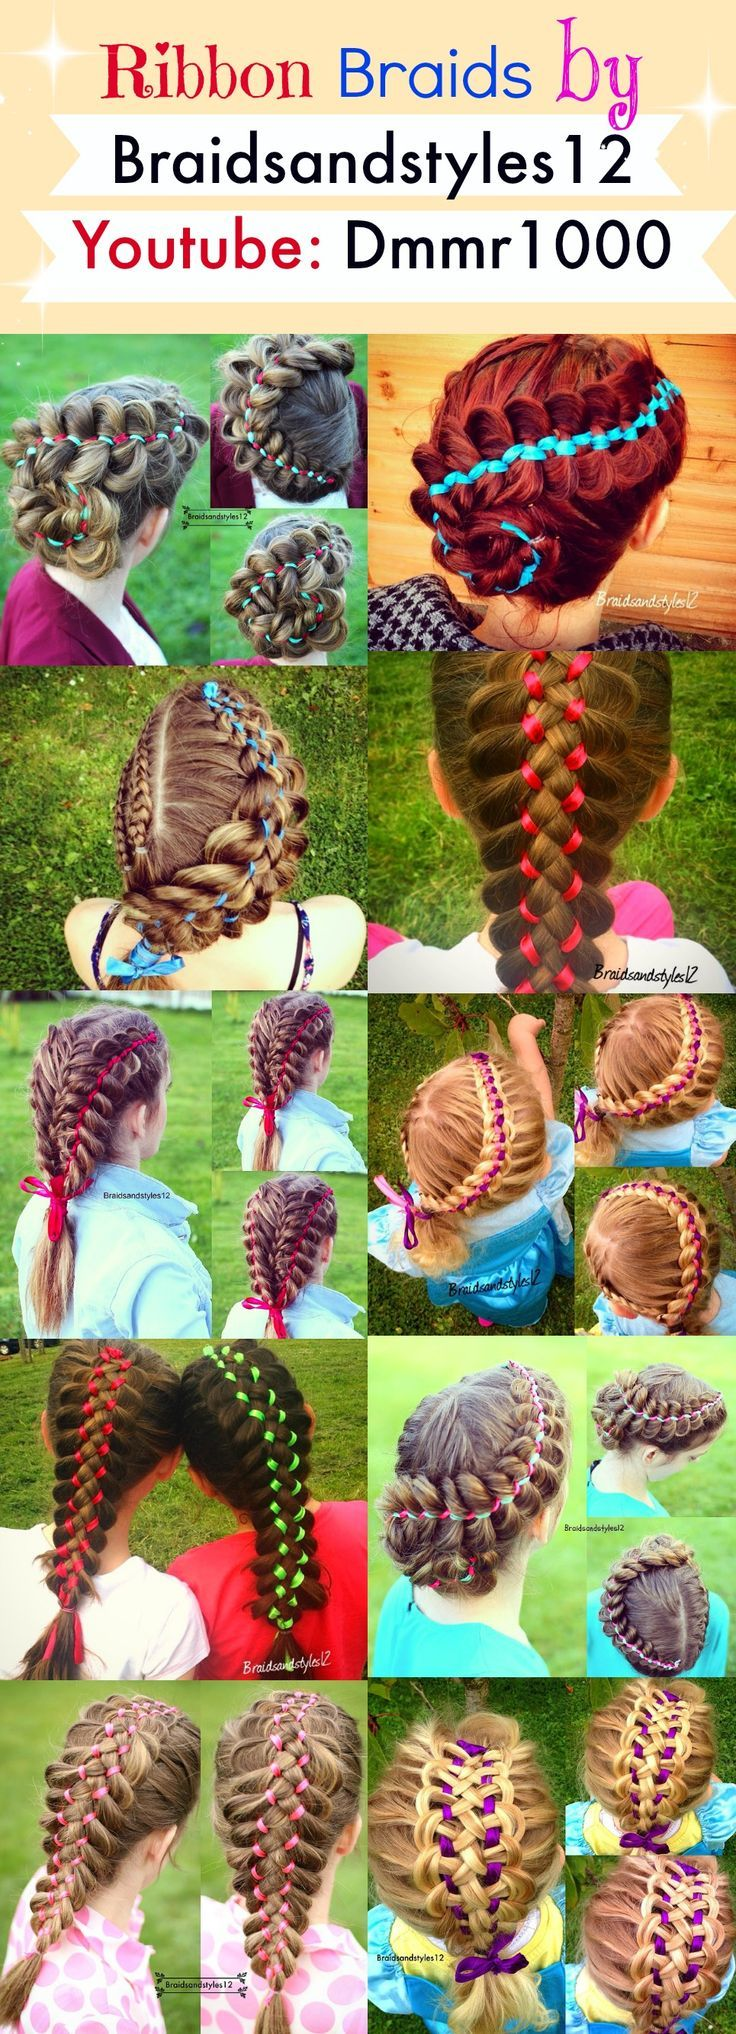 Braids with Ribbon by Braidsandstyles12 , DIY Braid Tutorials Youtube: www.youtube.com/... - Picmia